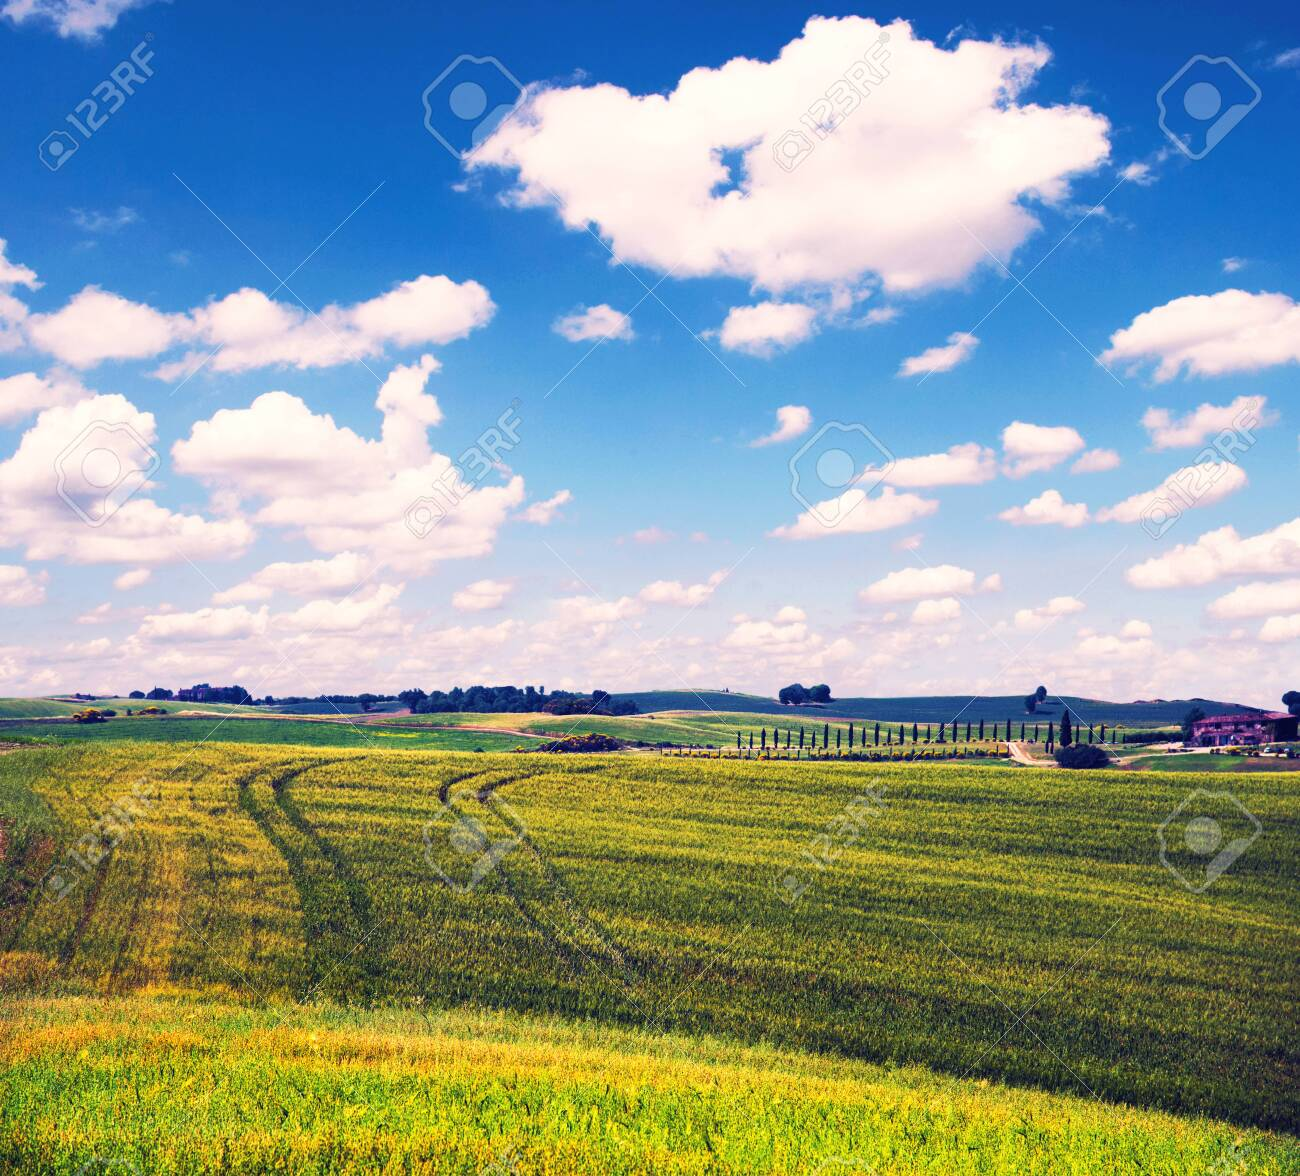 fascinating beautiful magnetism landscape with tracks of wheels on hills against clouds in Tuscany, Italy. Excellent tourist places. - 120994561